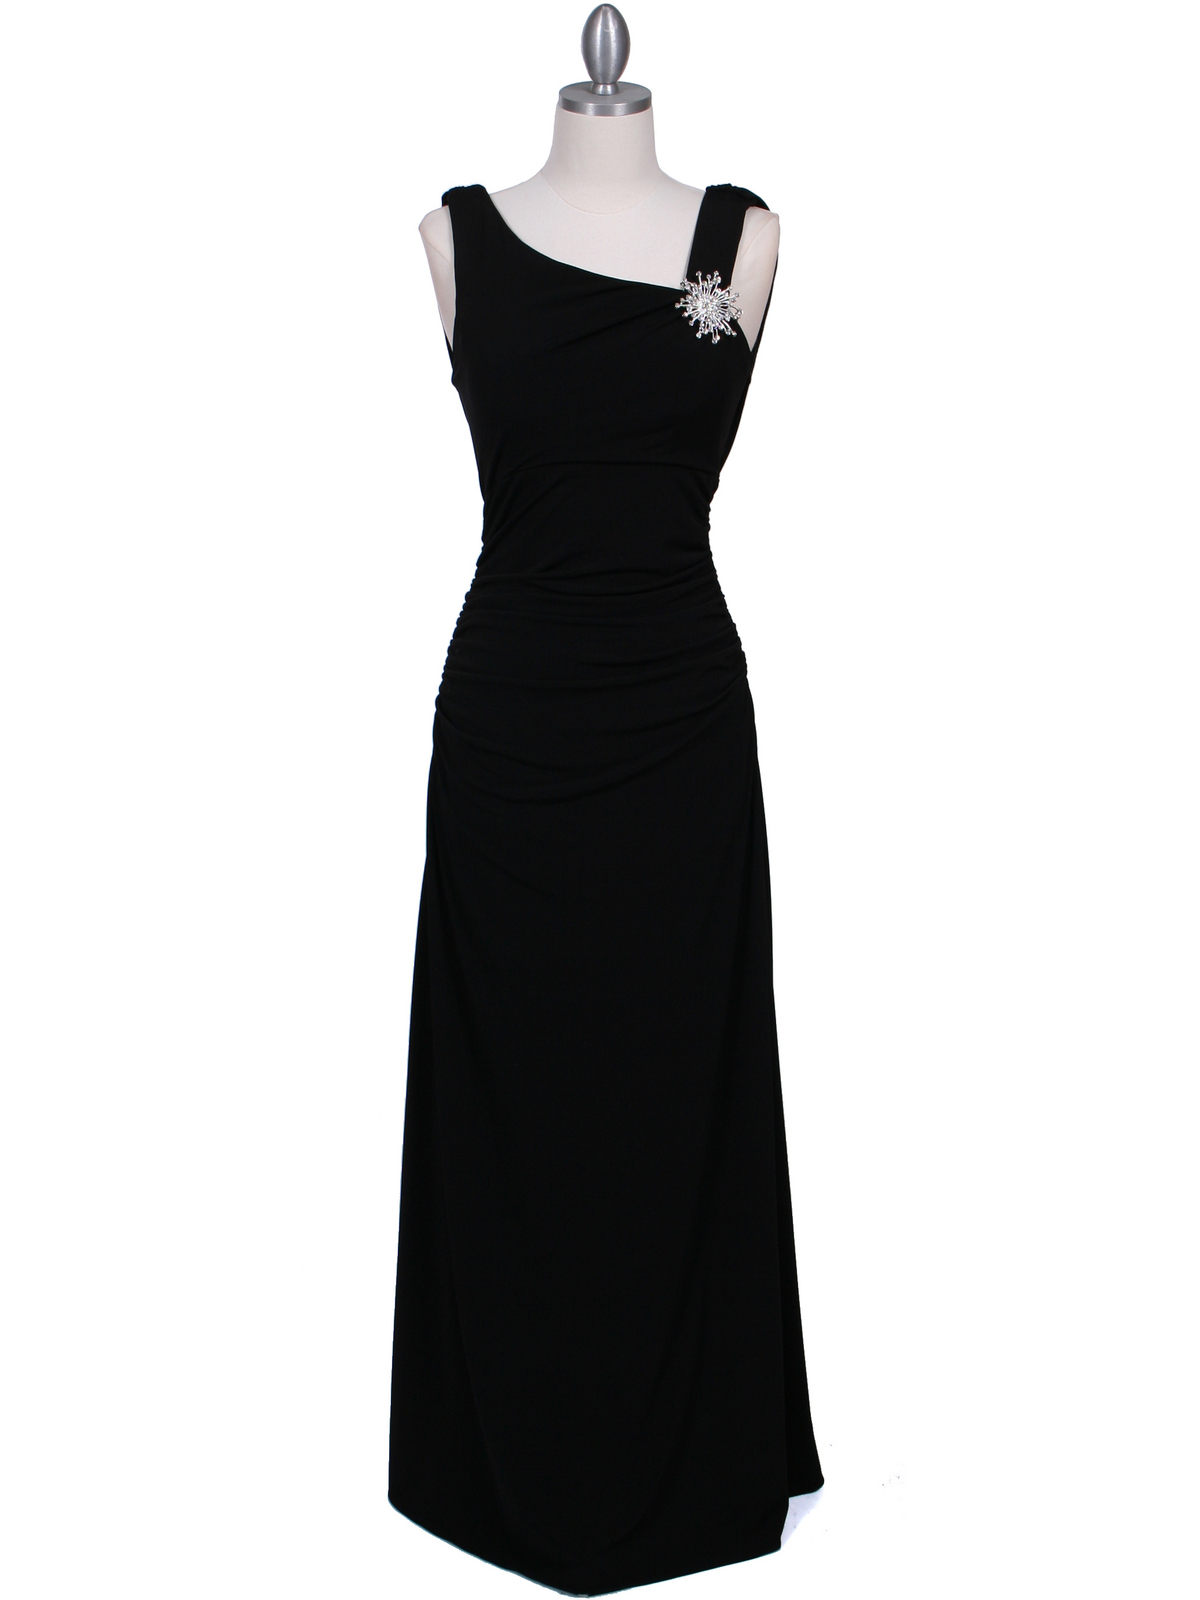 1643 Black Draped Back Evening Dress with Rhinestone Pin - Front Image